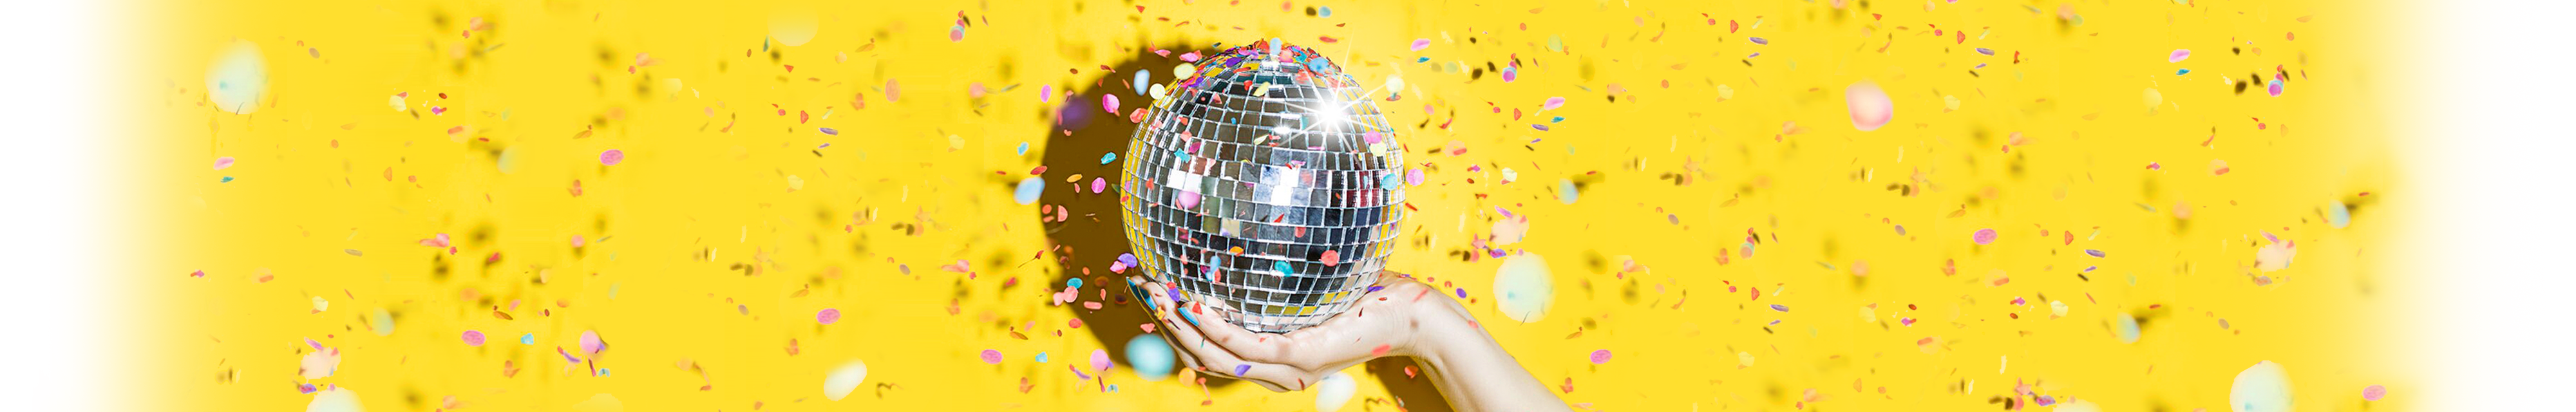 OnePitch Disco Ball in Hand with Confetti